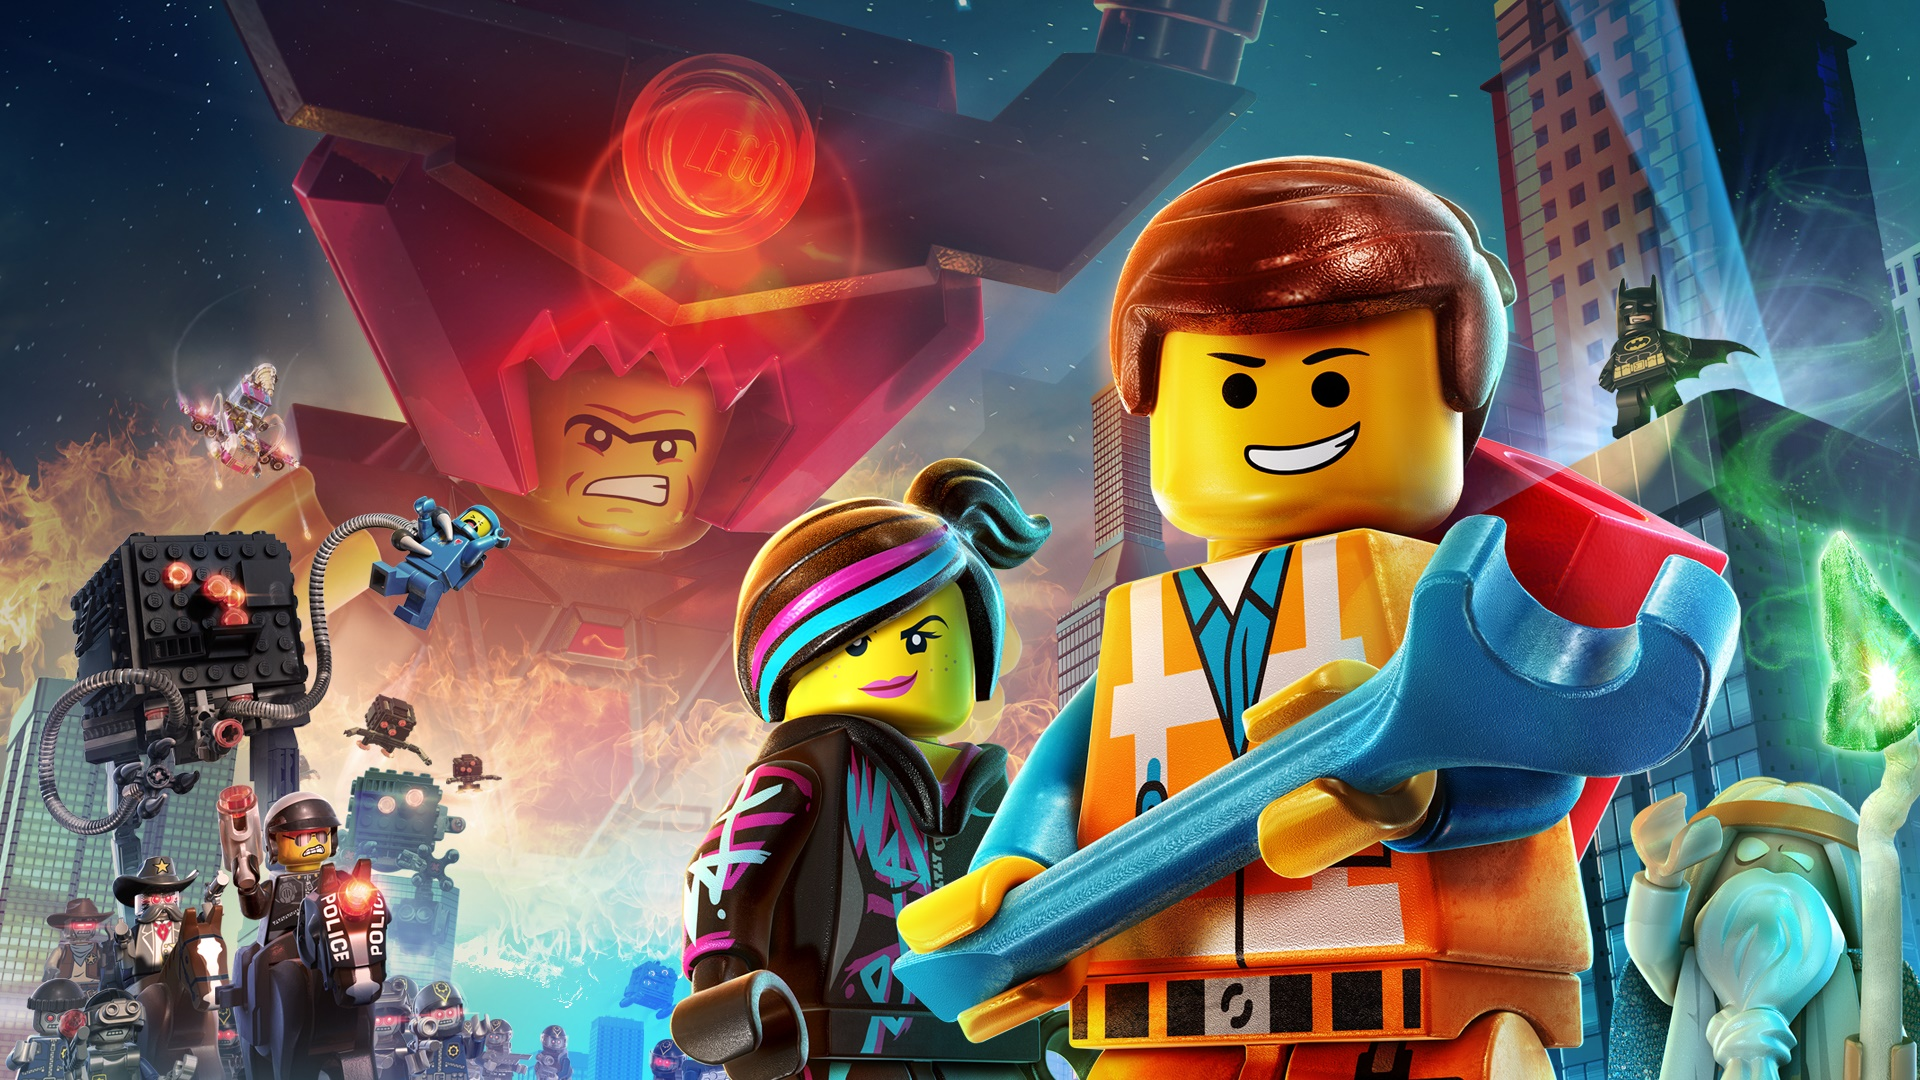 The Lego Movie 2014 Movie 2977.59 Kb